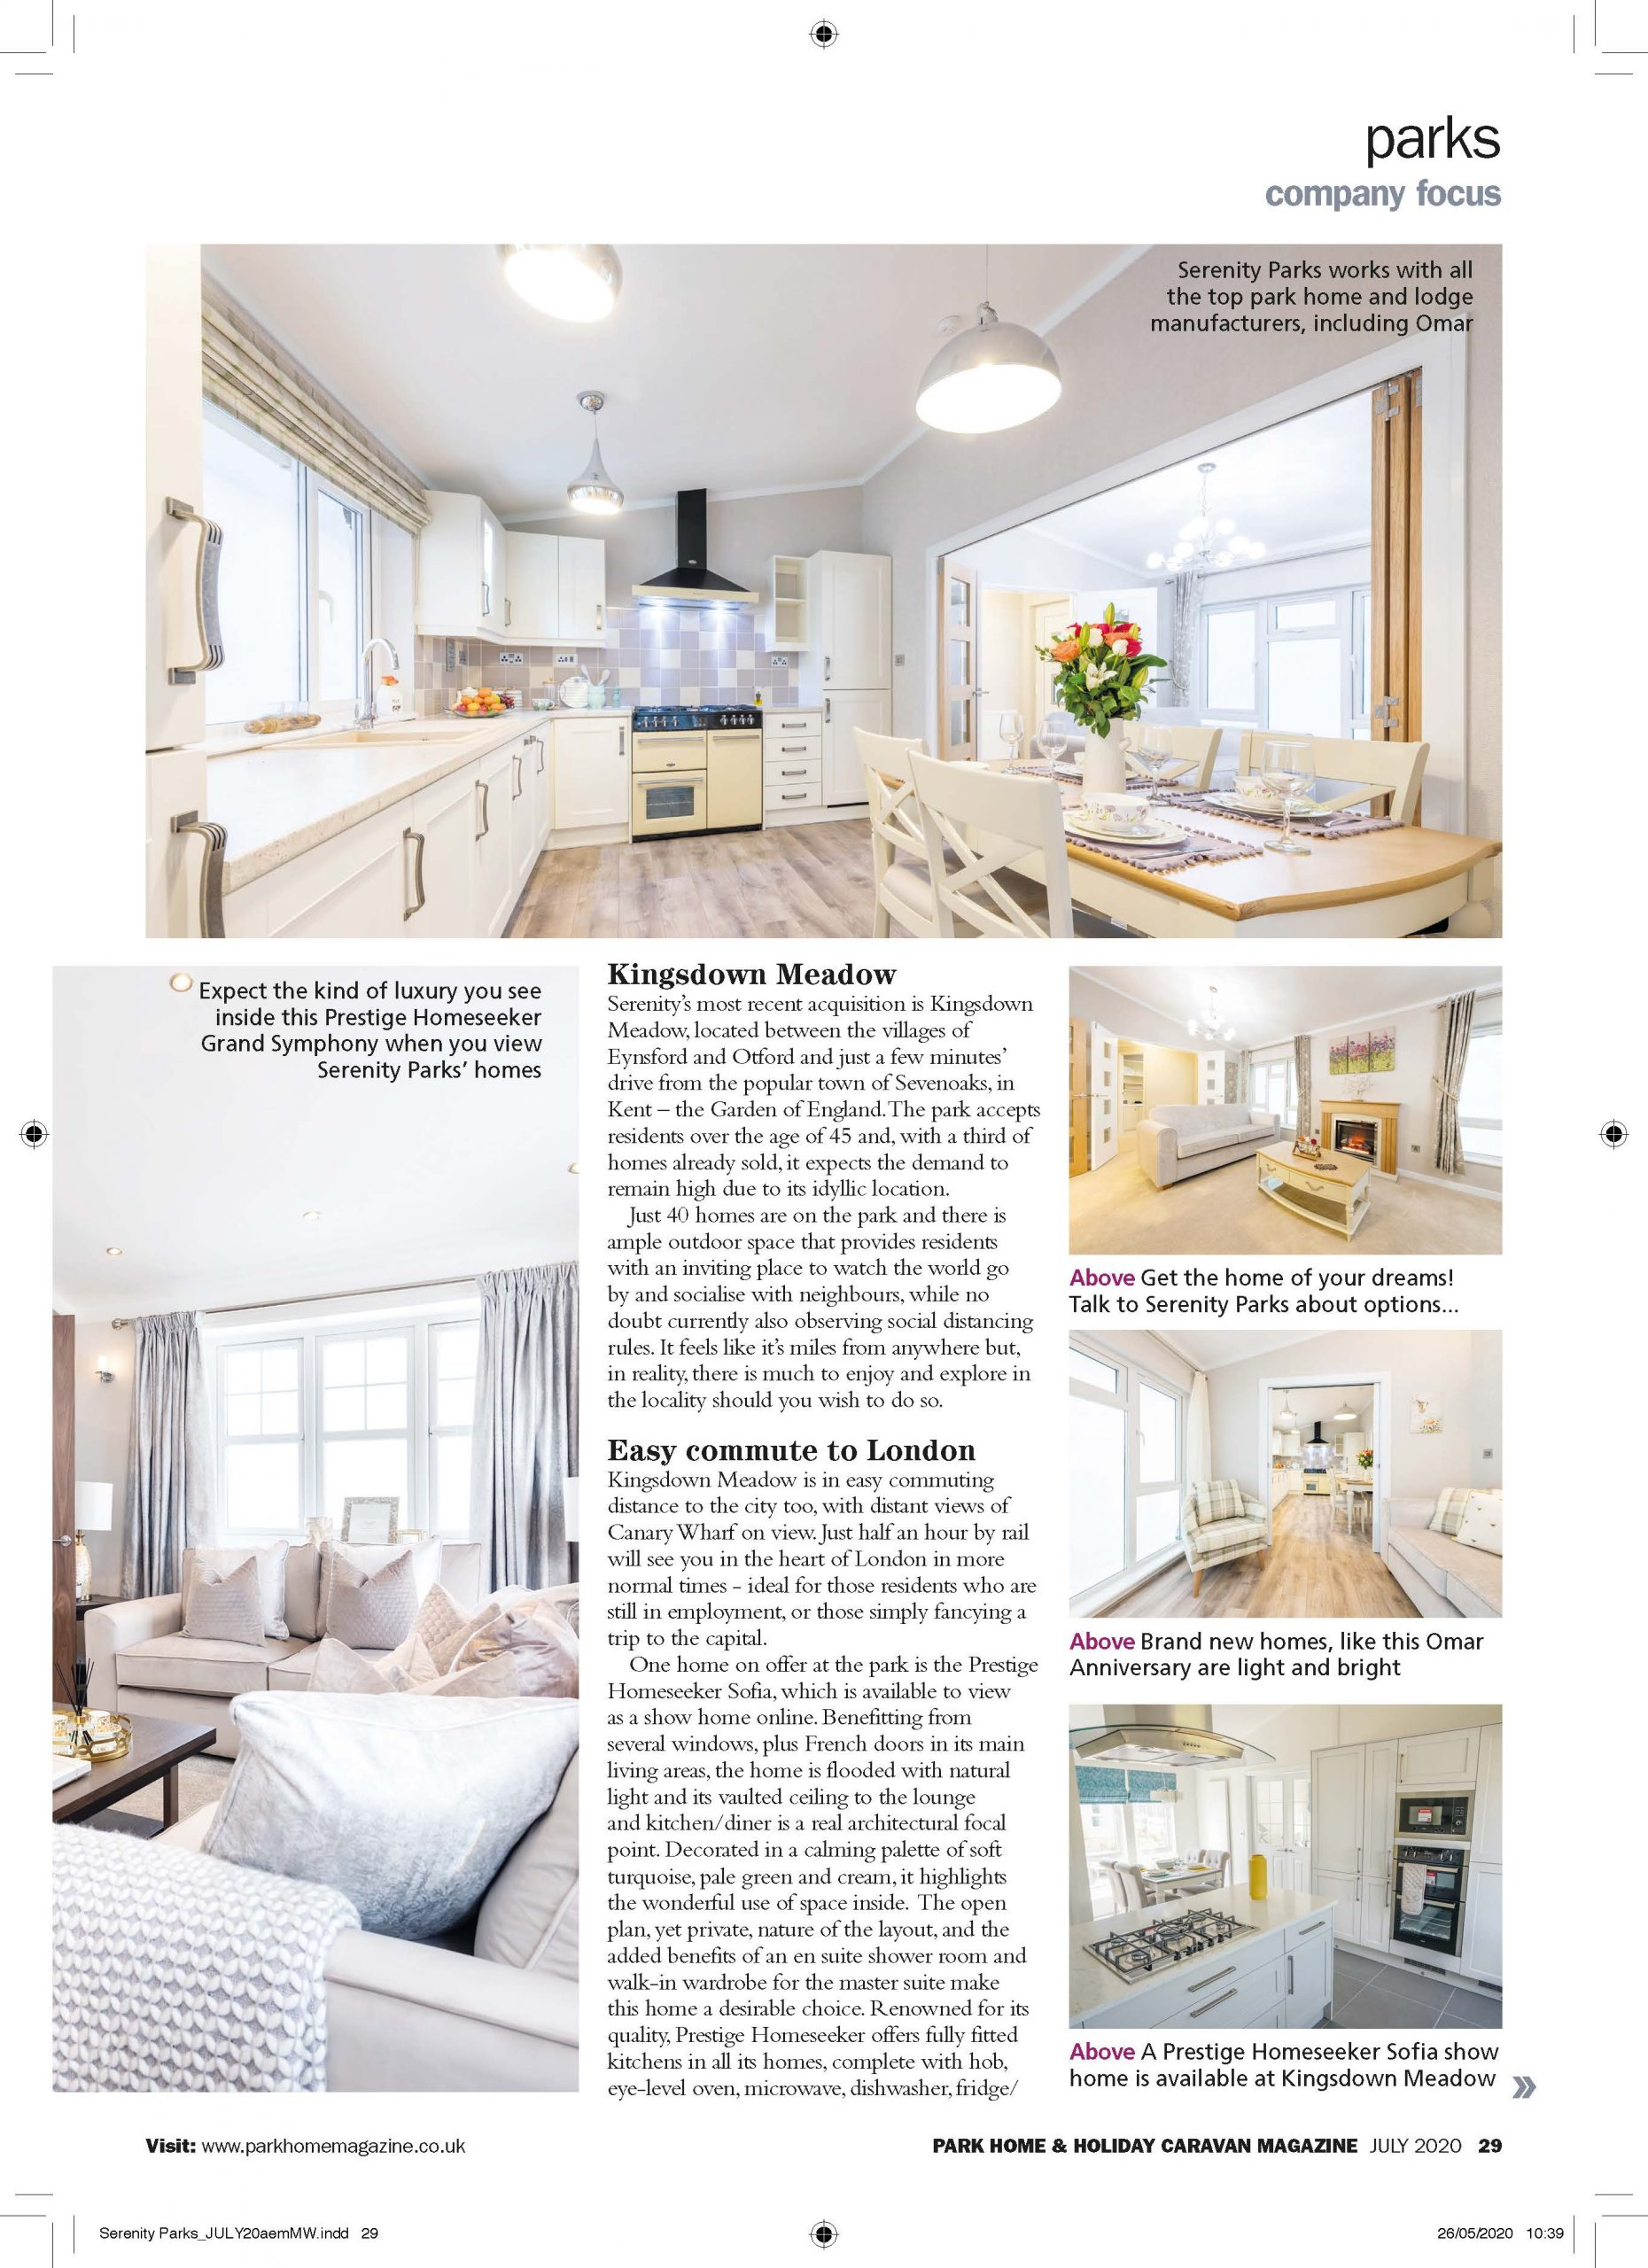 Park Home & Holiday Caravan Magazine Review Page 2